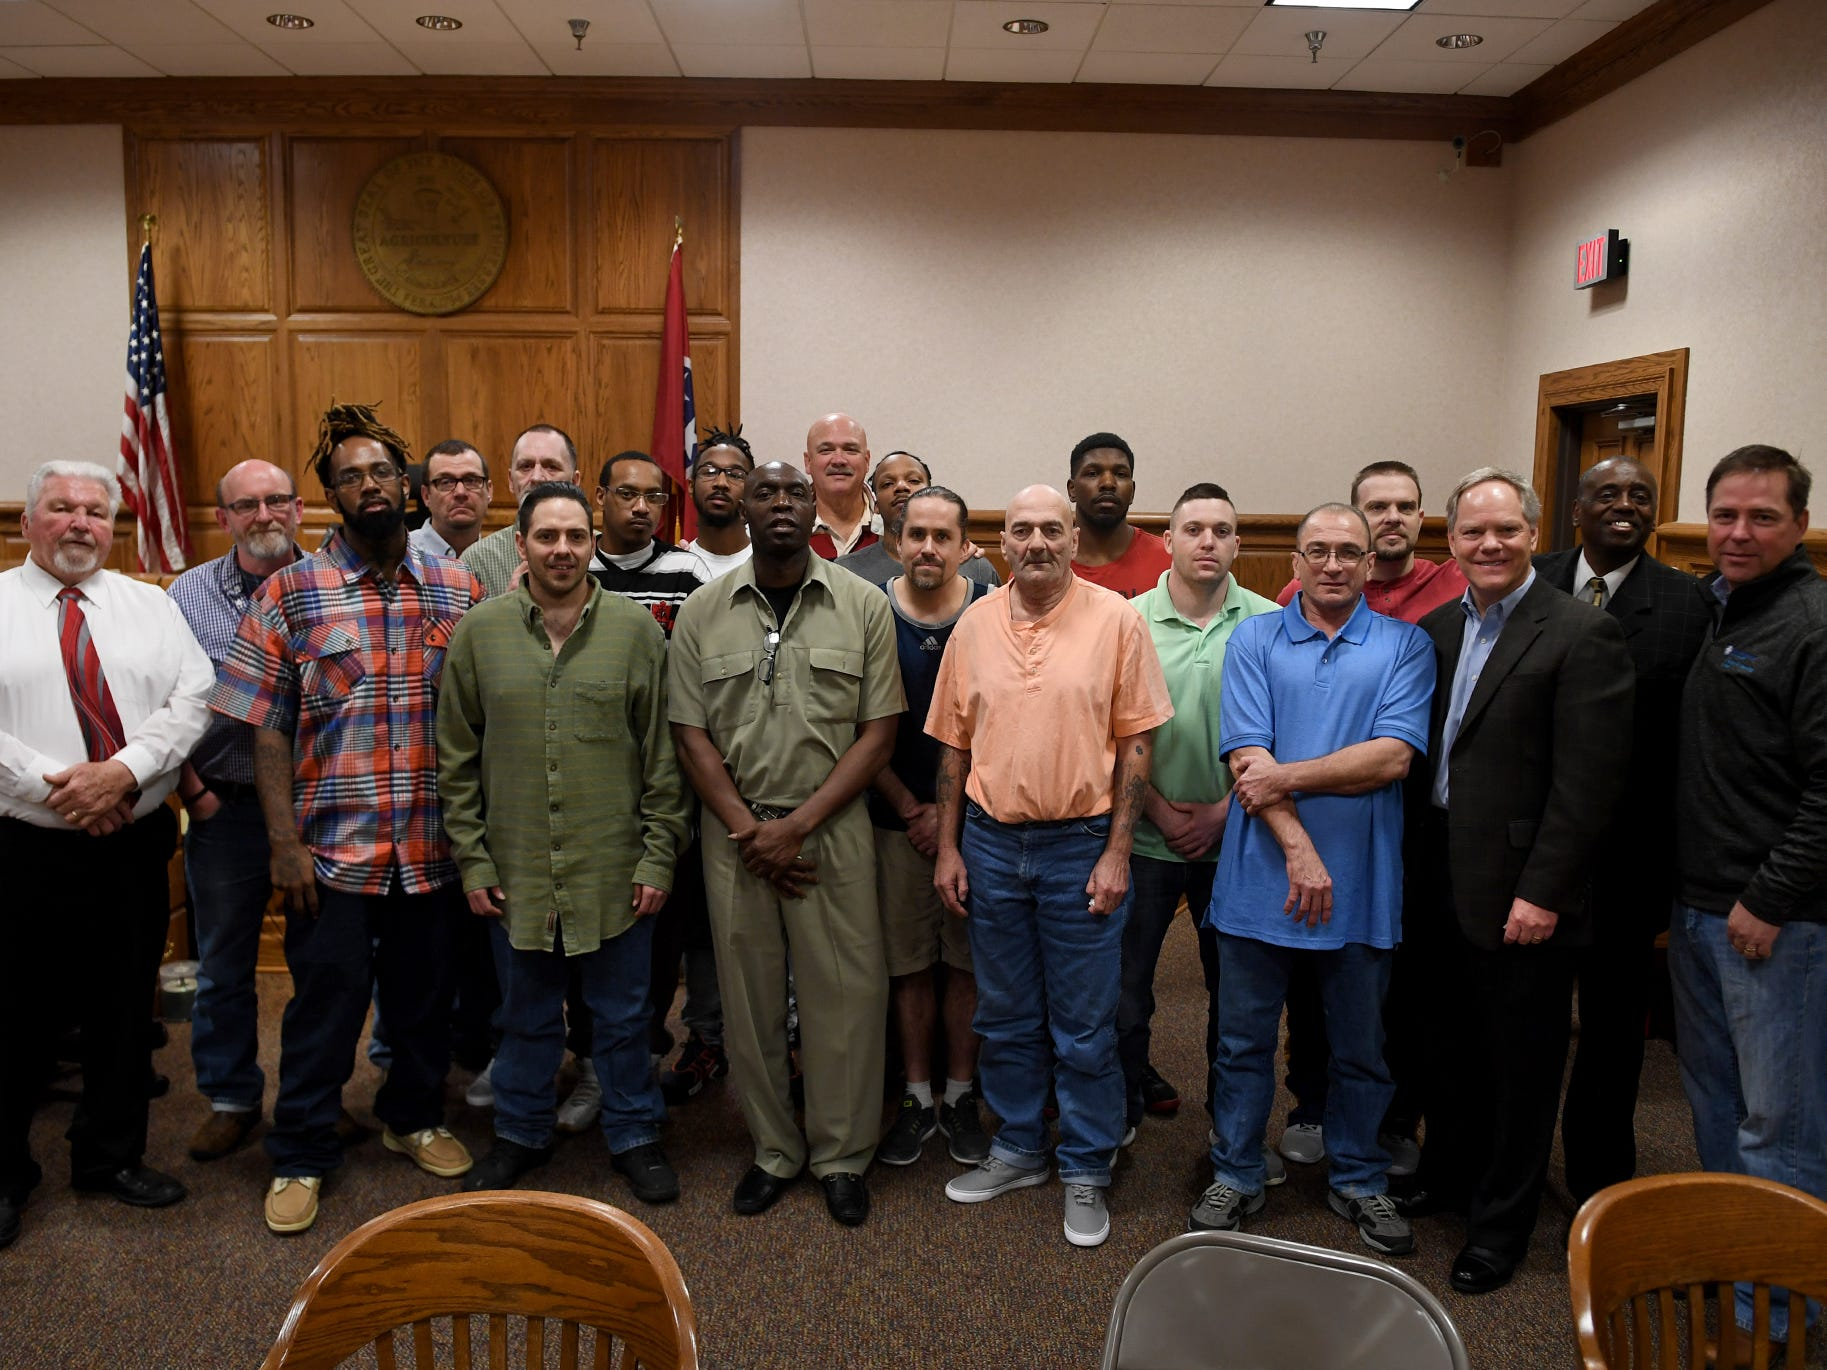 14 Madison County Jail inmates received certificates from the Life's Healing Choices Program, Friday, April 5. The 8-week program is sponsored by Celebrate Recovery Ministry.